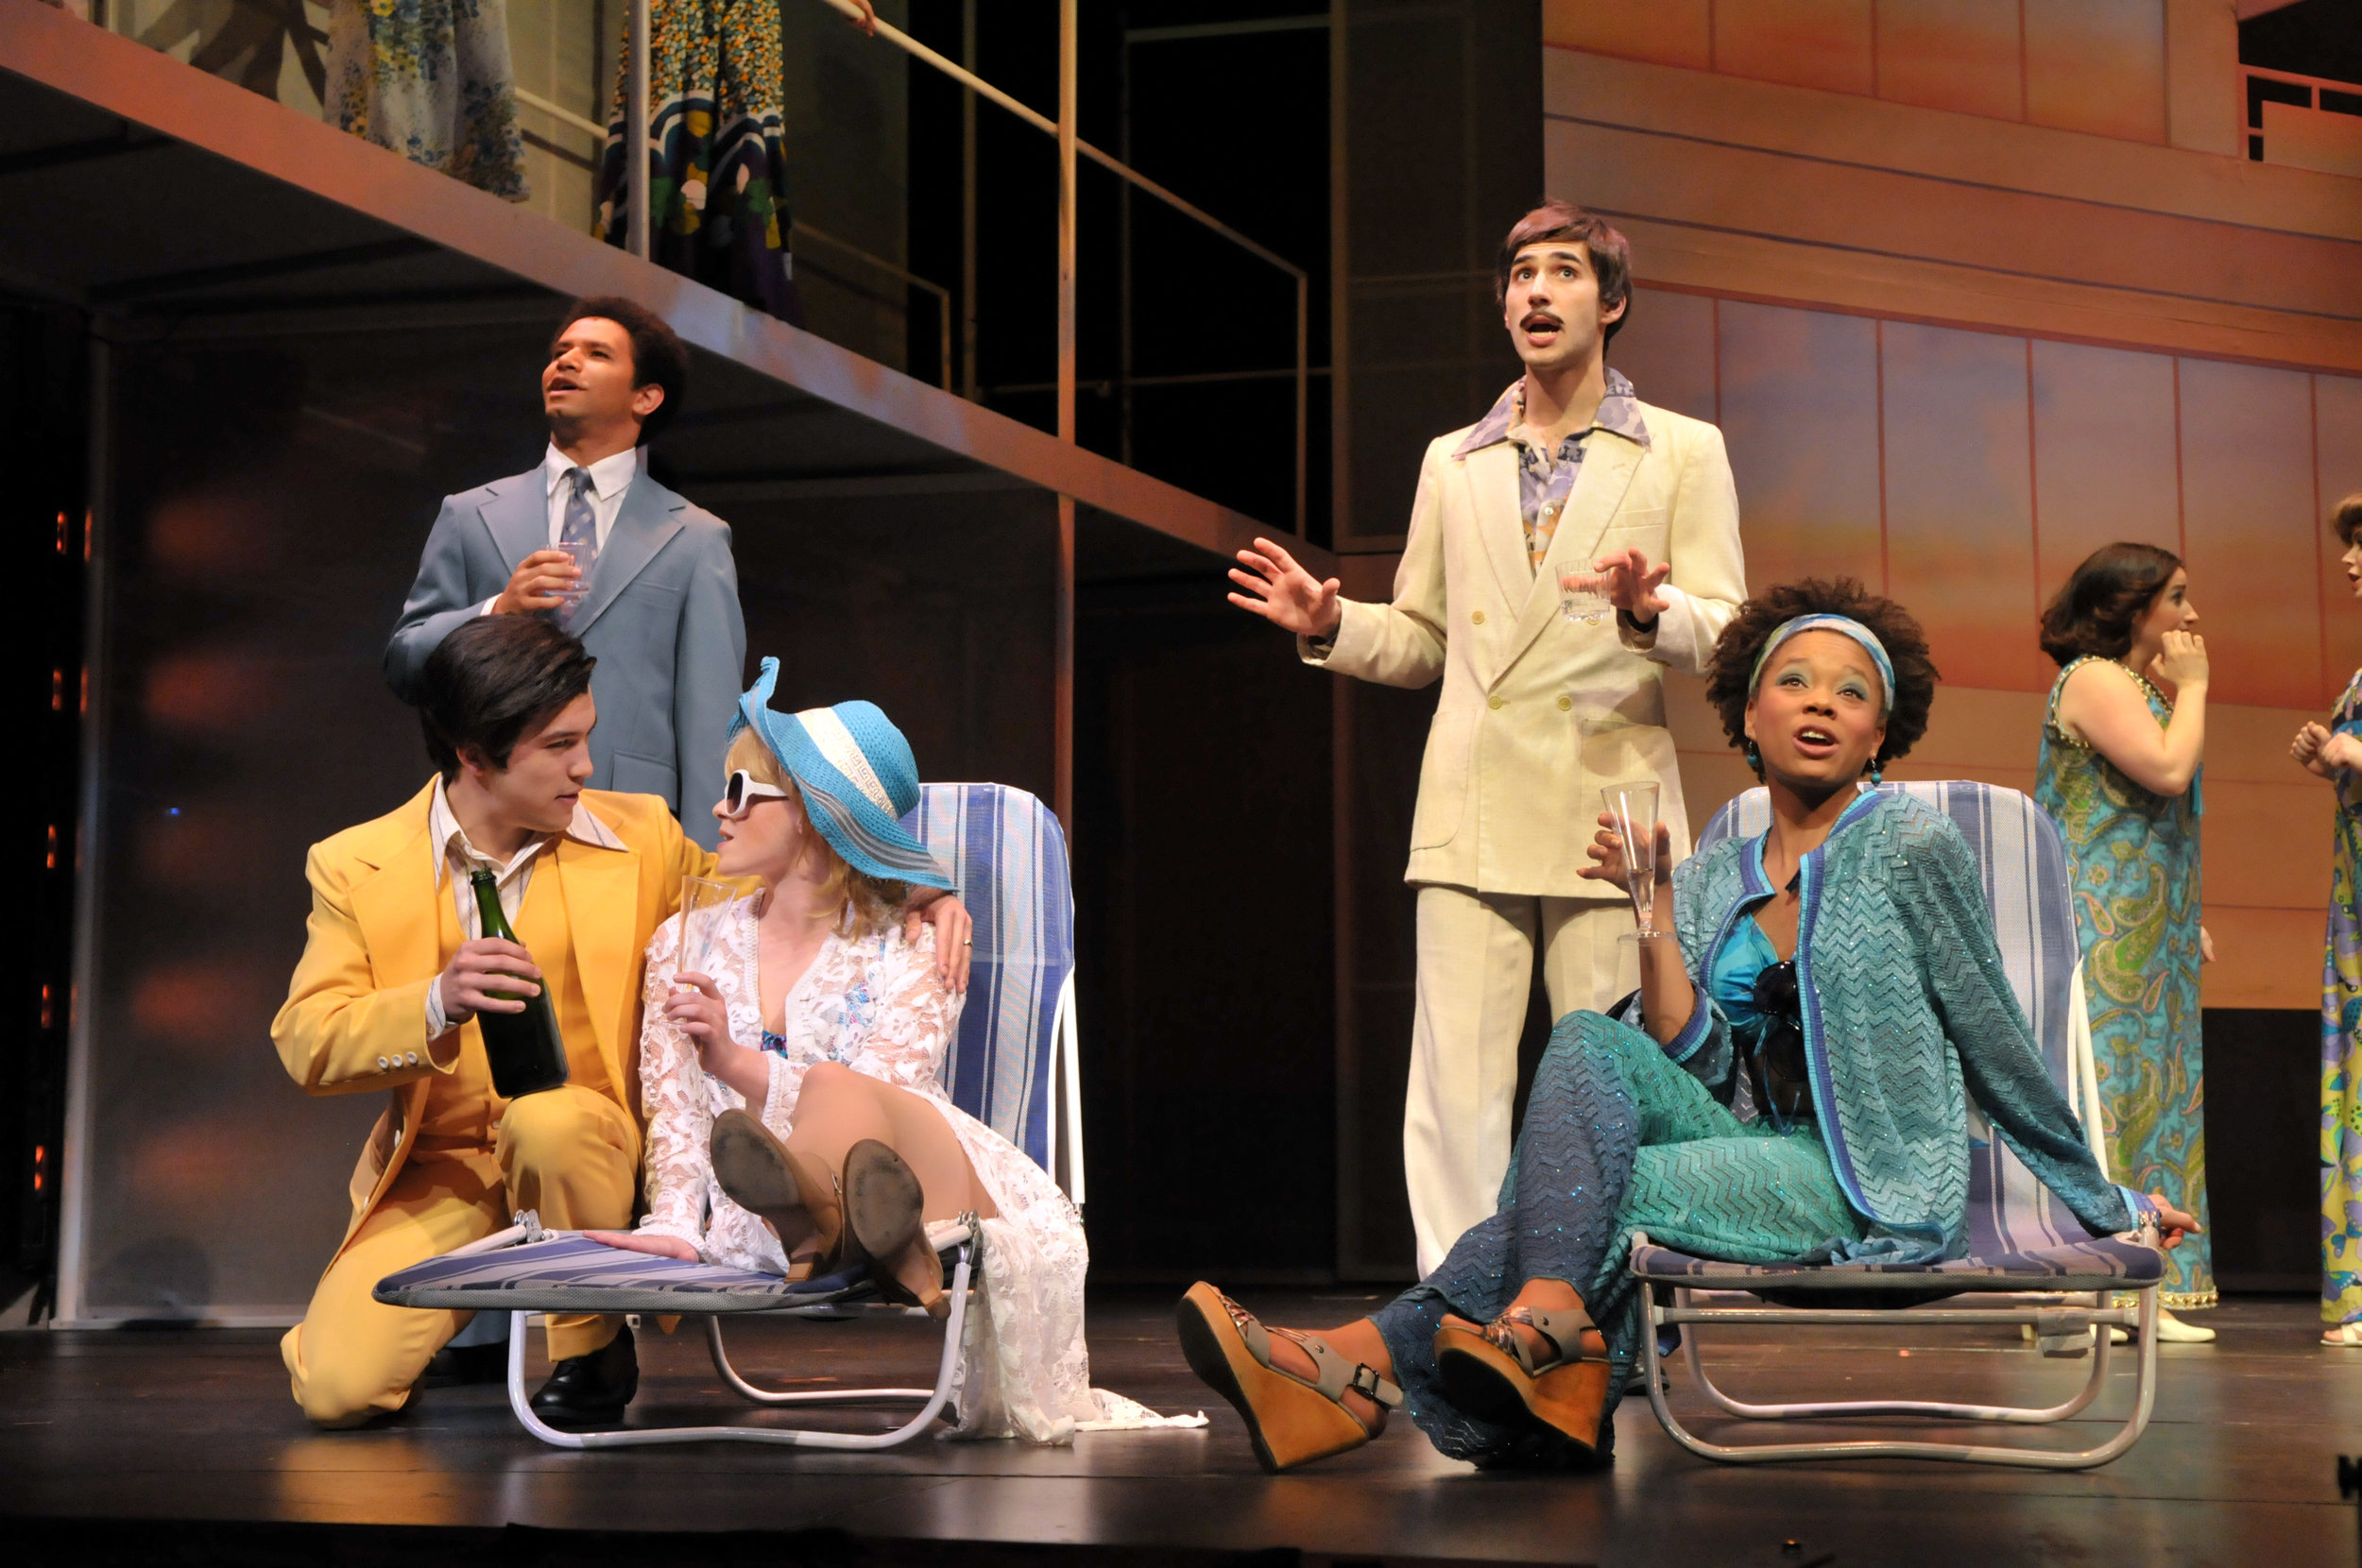 emerson-stage---merrily-we-roll-along_17345287546_o.jpg